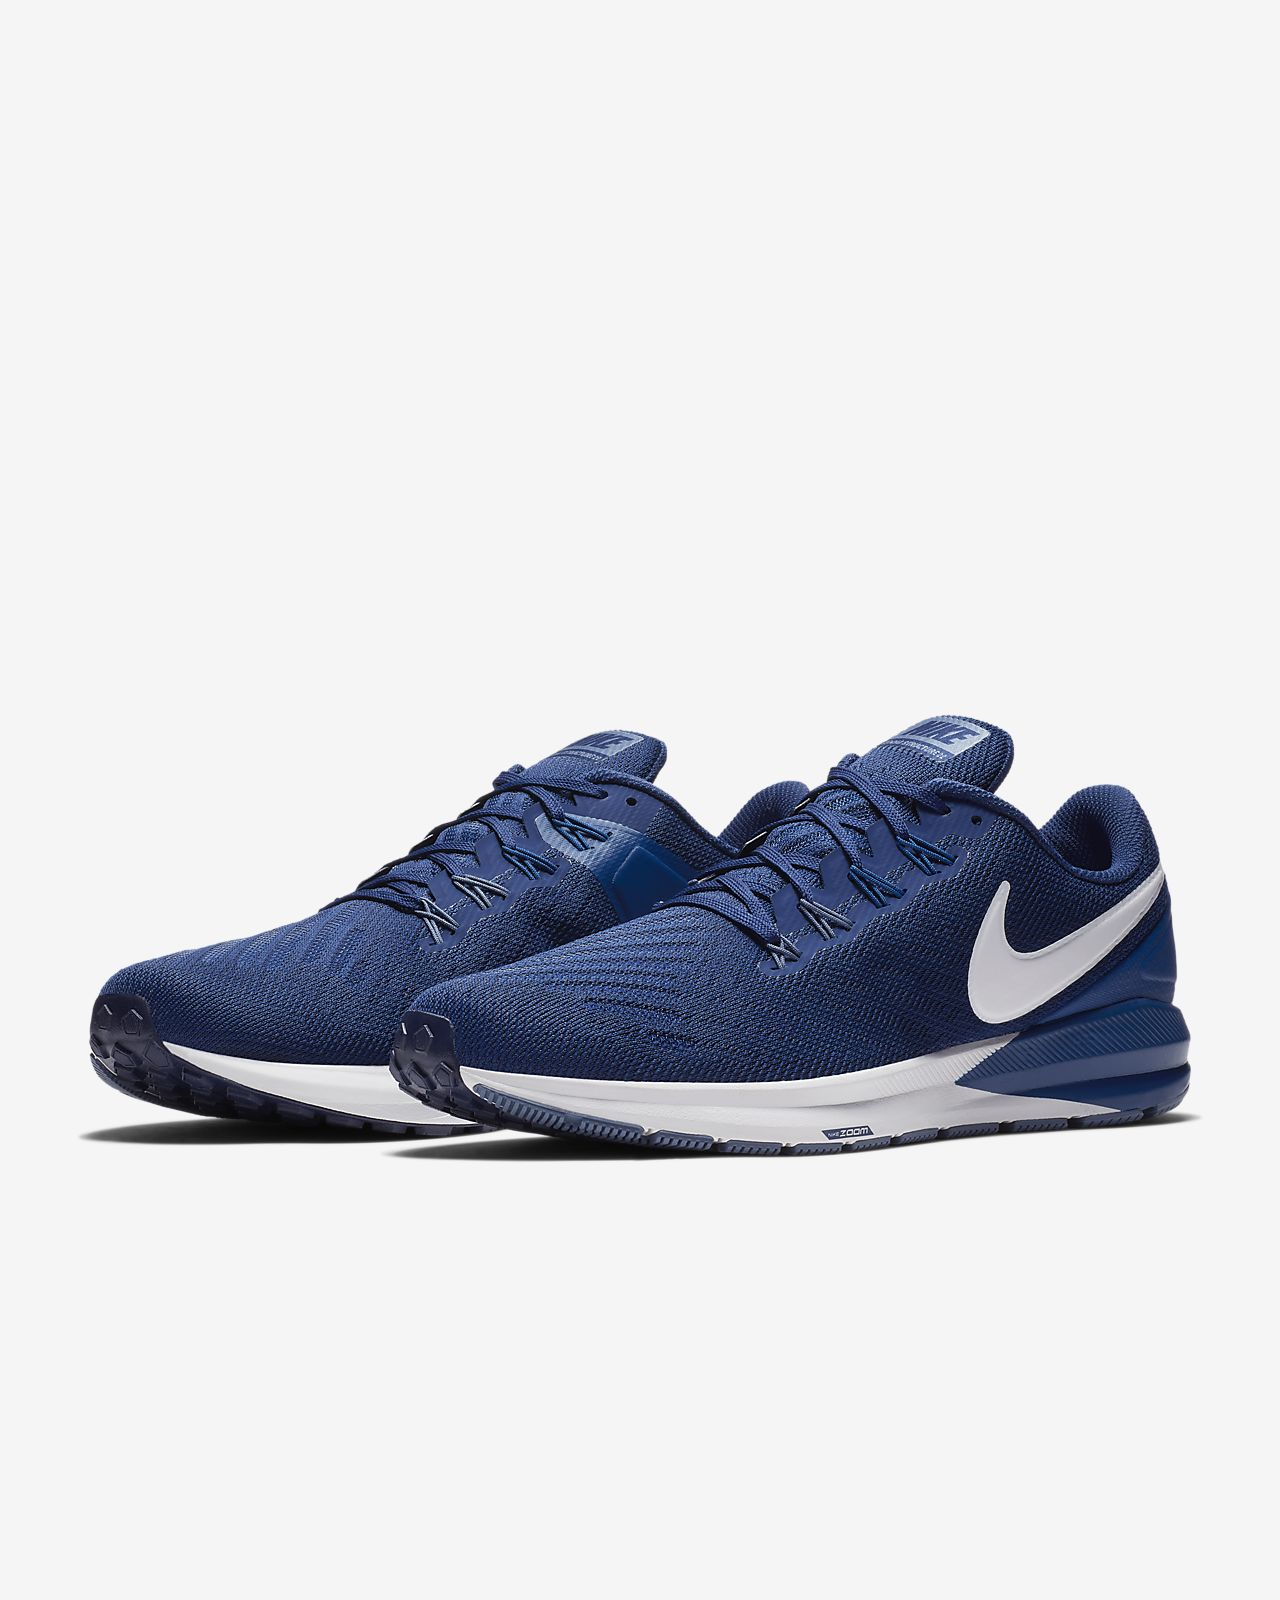 ffc4e500cd457 Nike Air Zoom Structure 22 Men's Running Shoe (Wide)